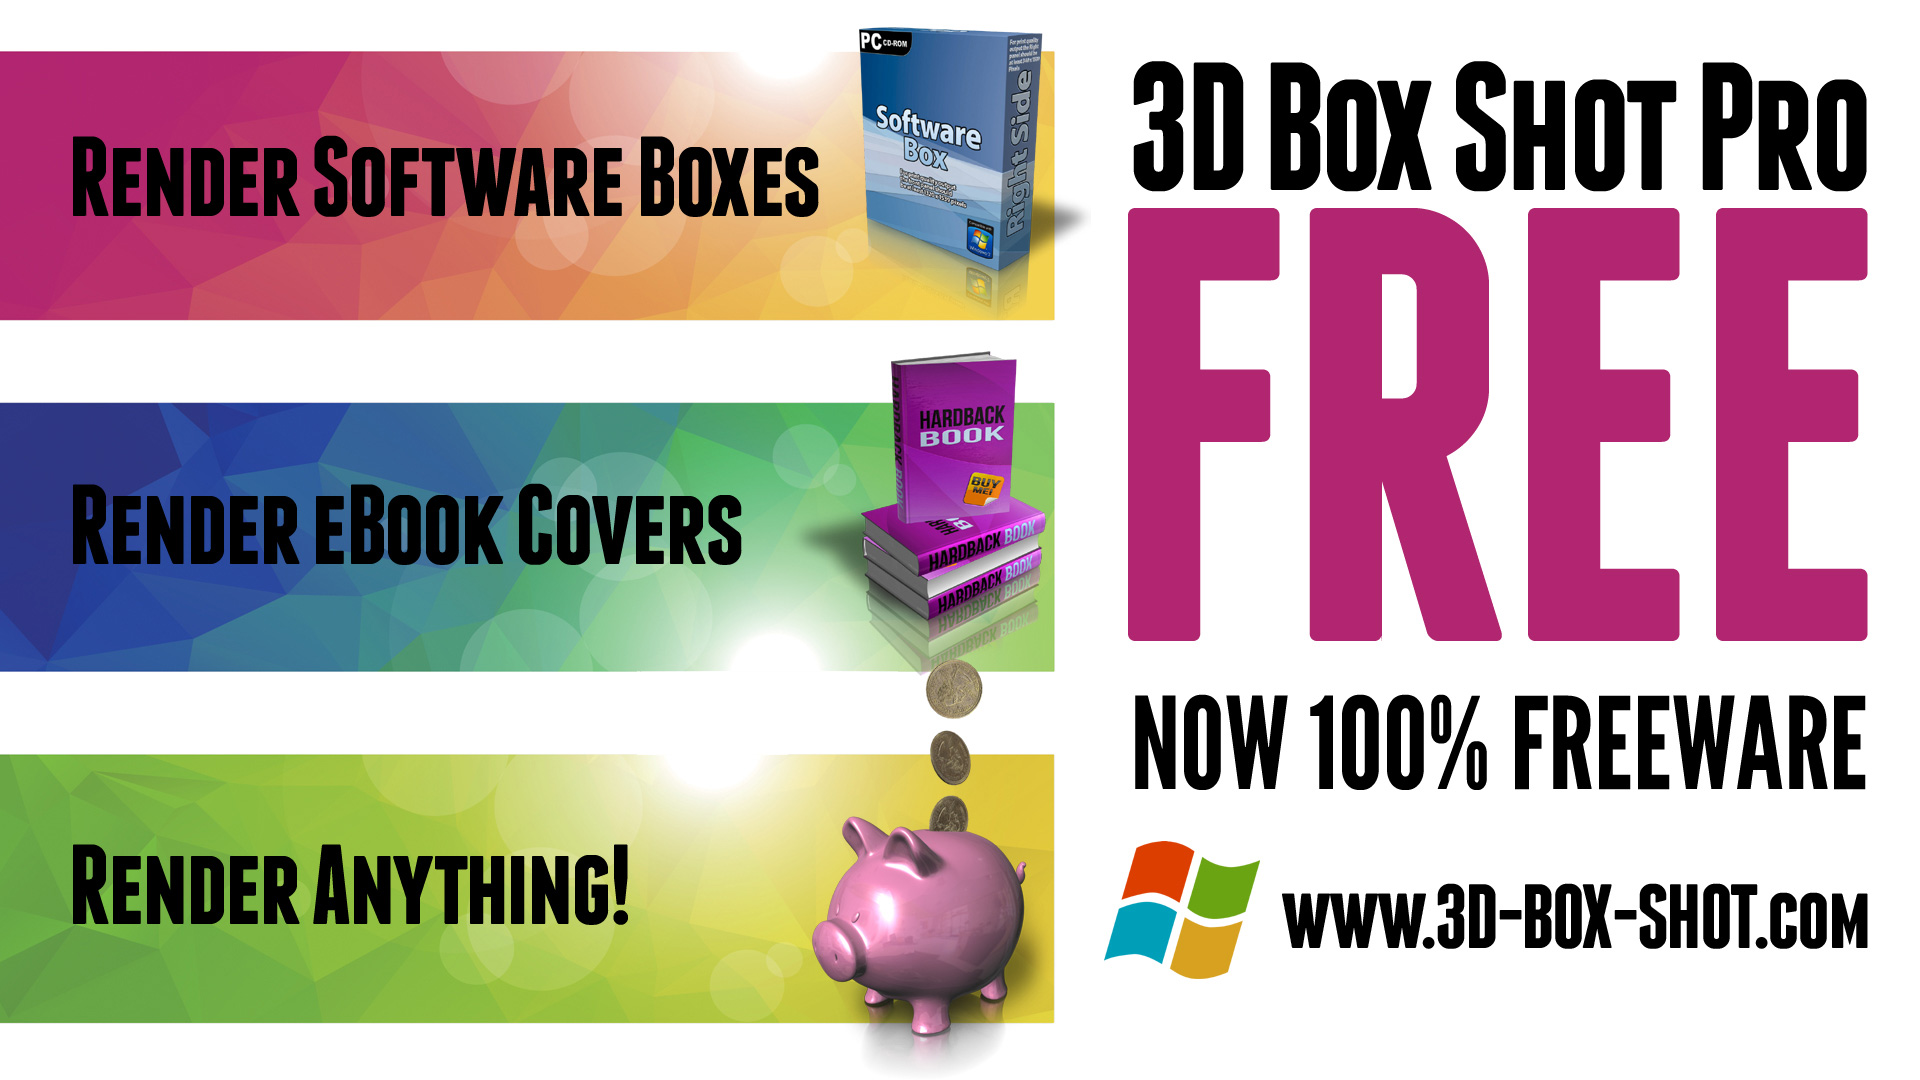 Download a Free Demo of 3D Box Shot Pro